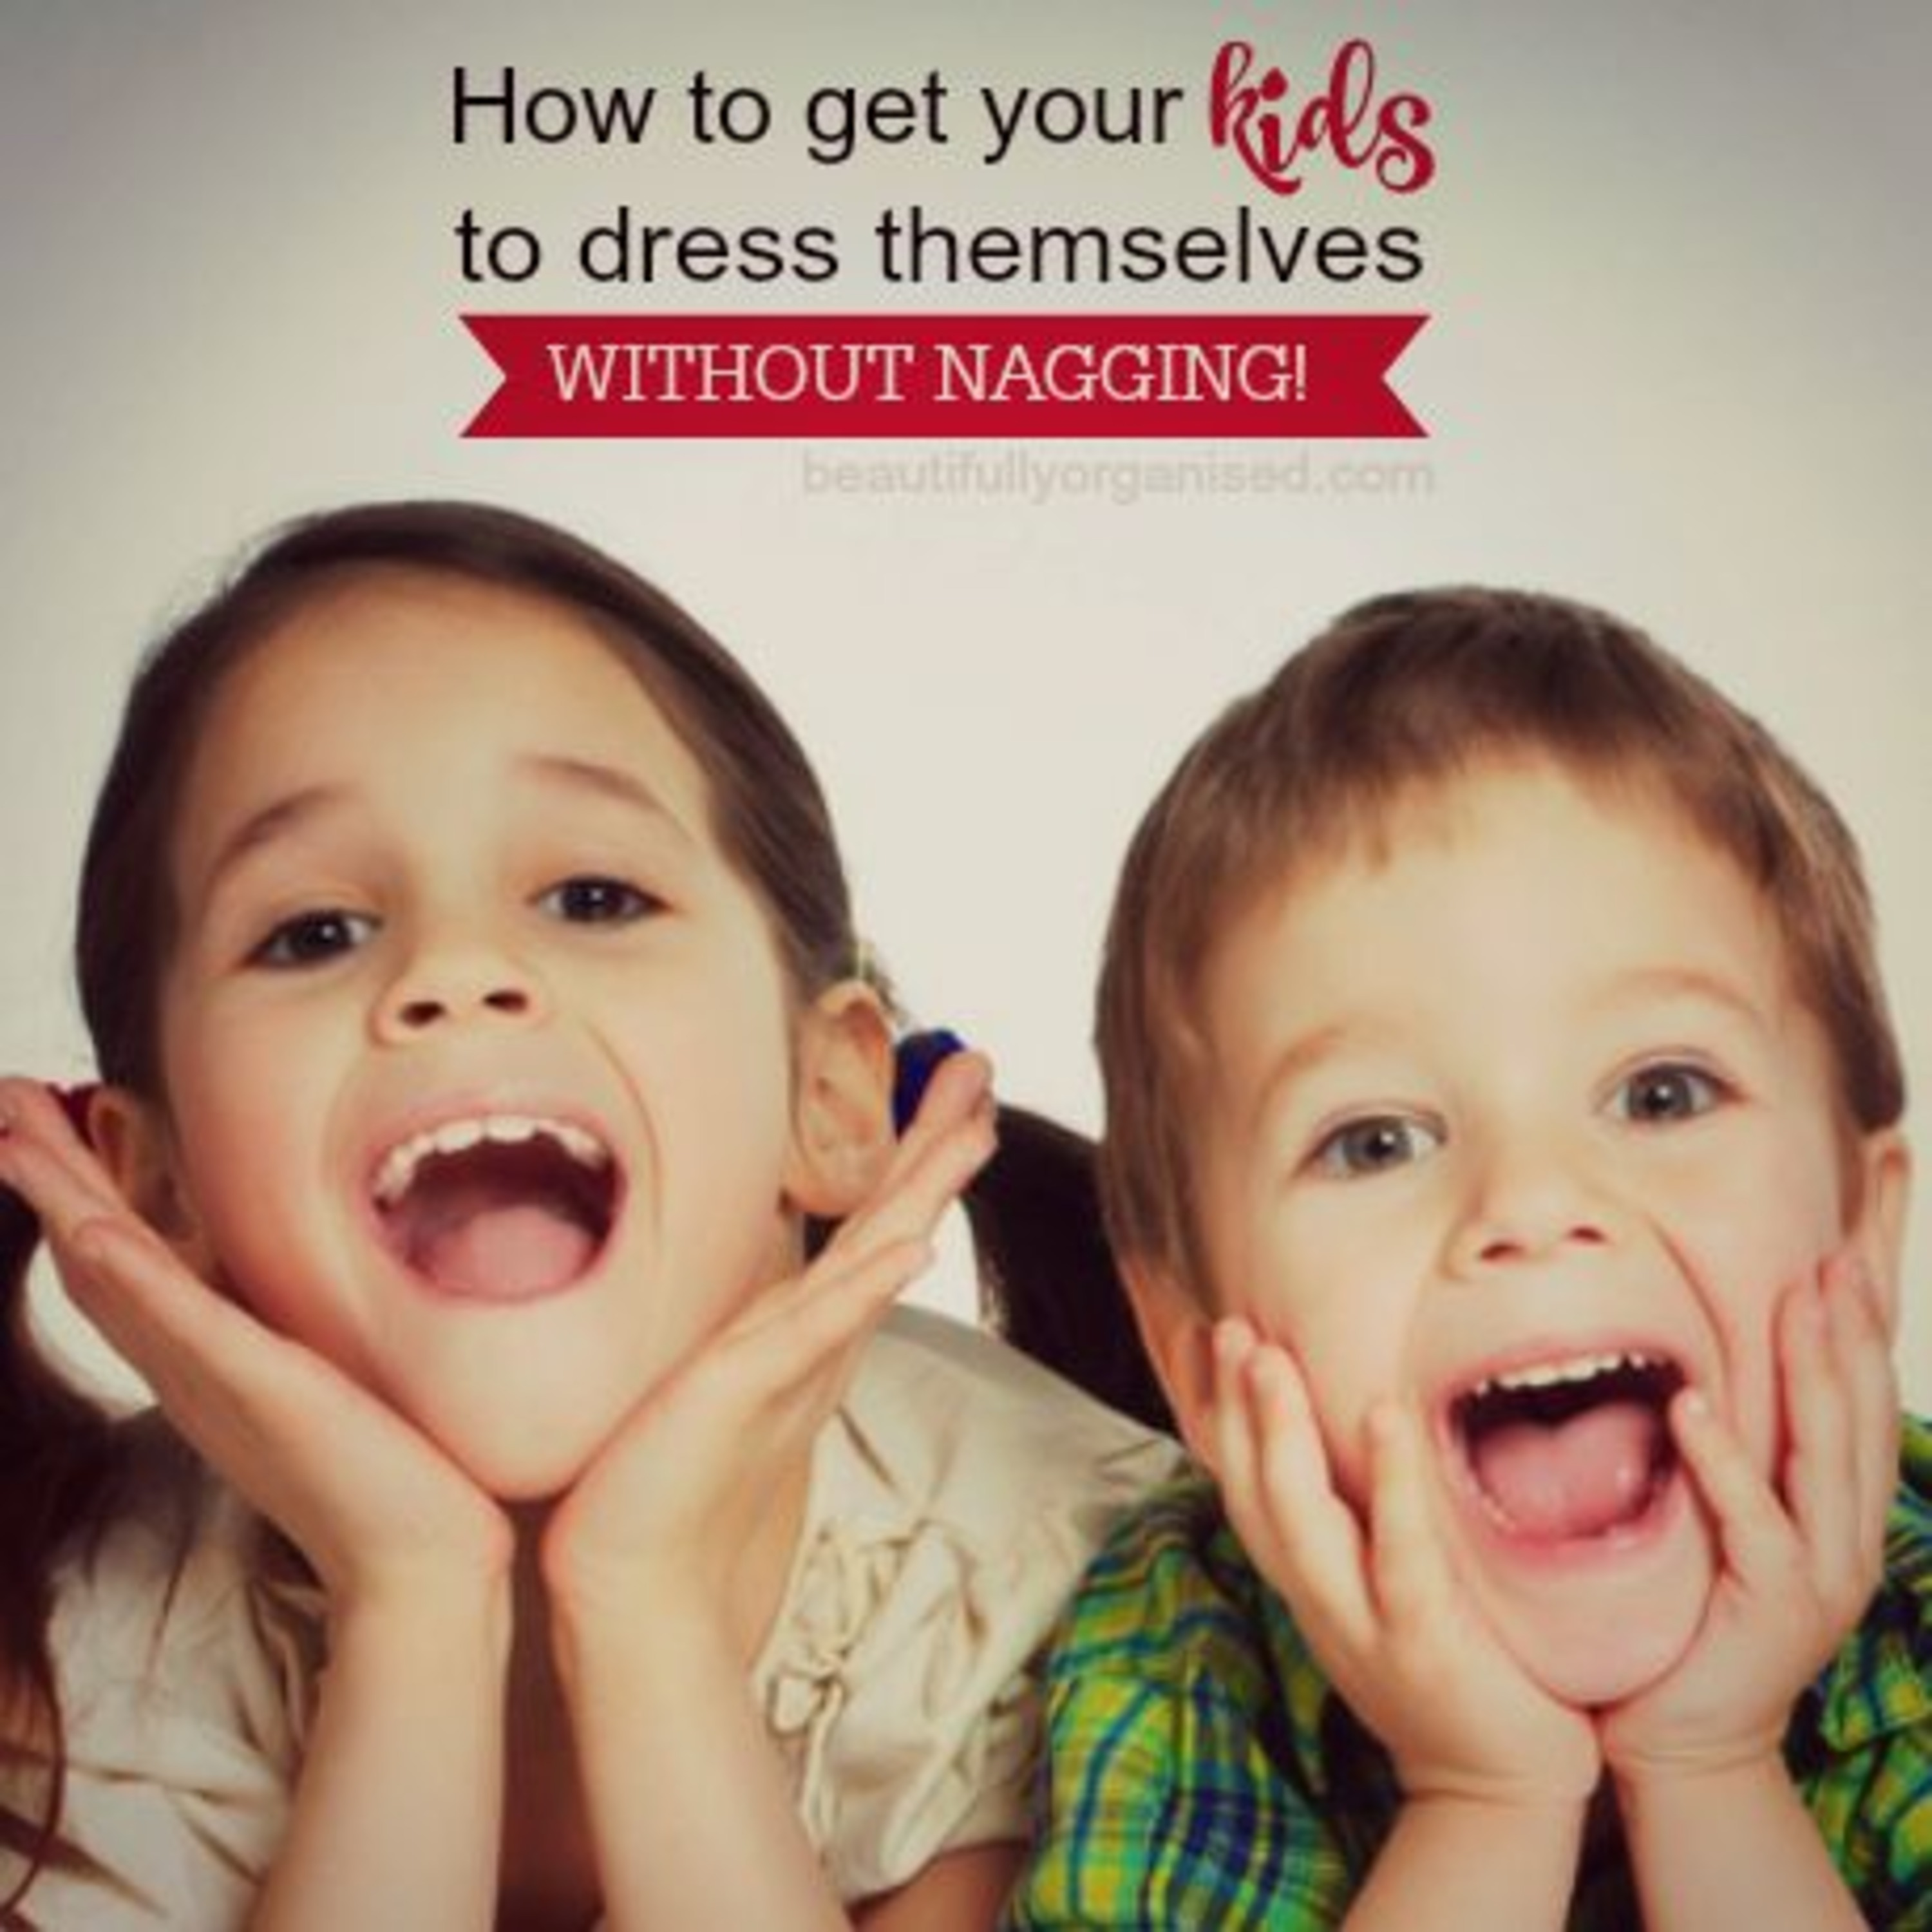 How To Get Your Kids To Dress Themselves Without Nagging